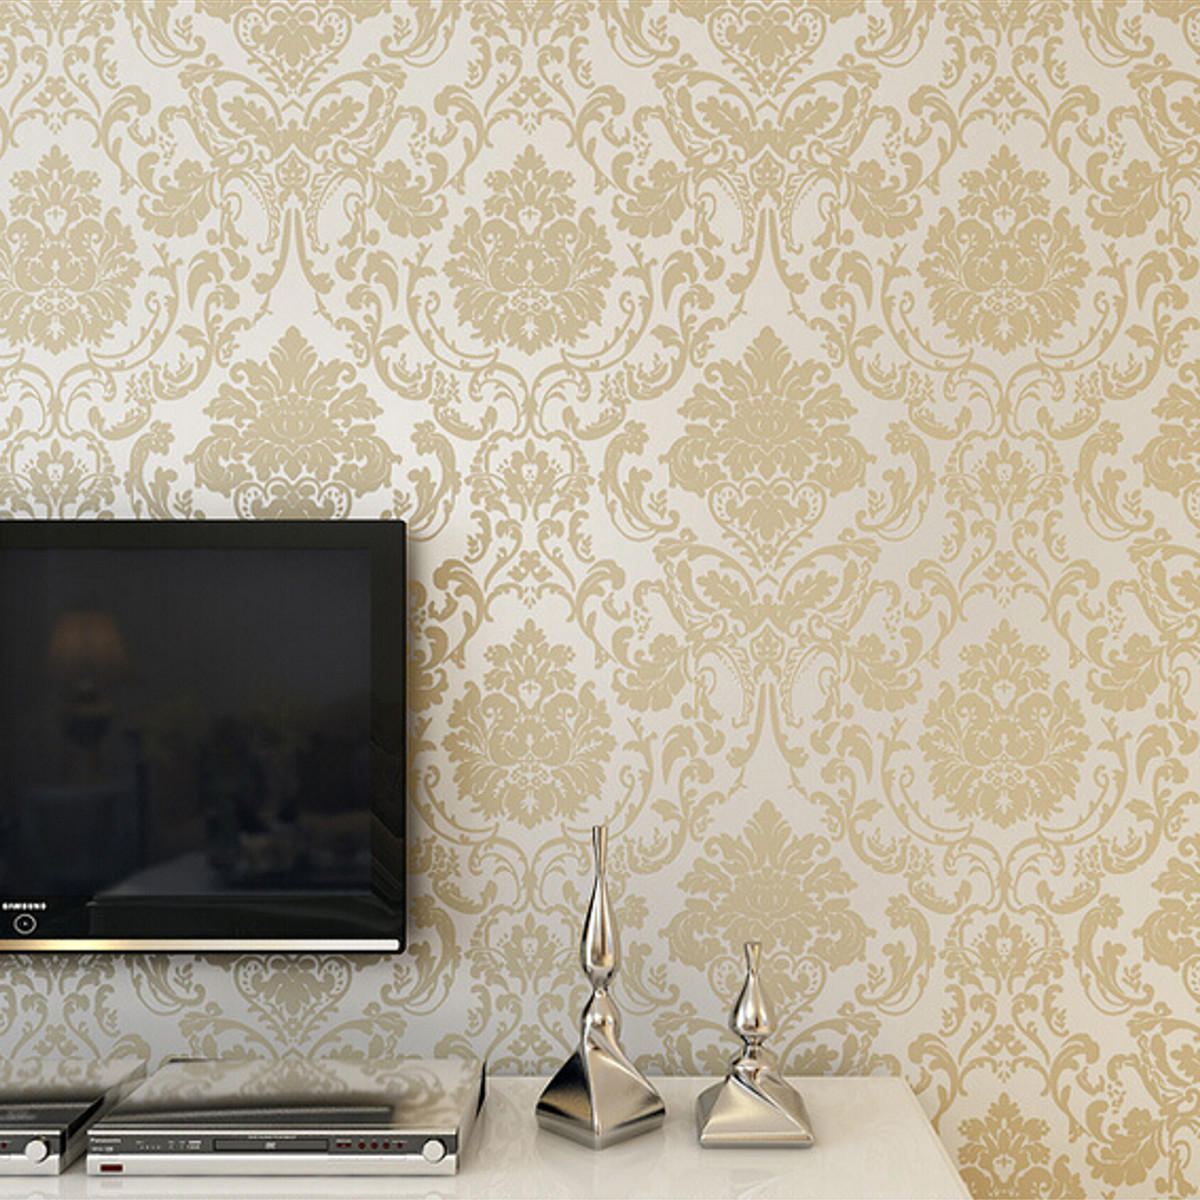 10m wallpaper roll 4 colors embossed damask design flocked non 1200x1200